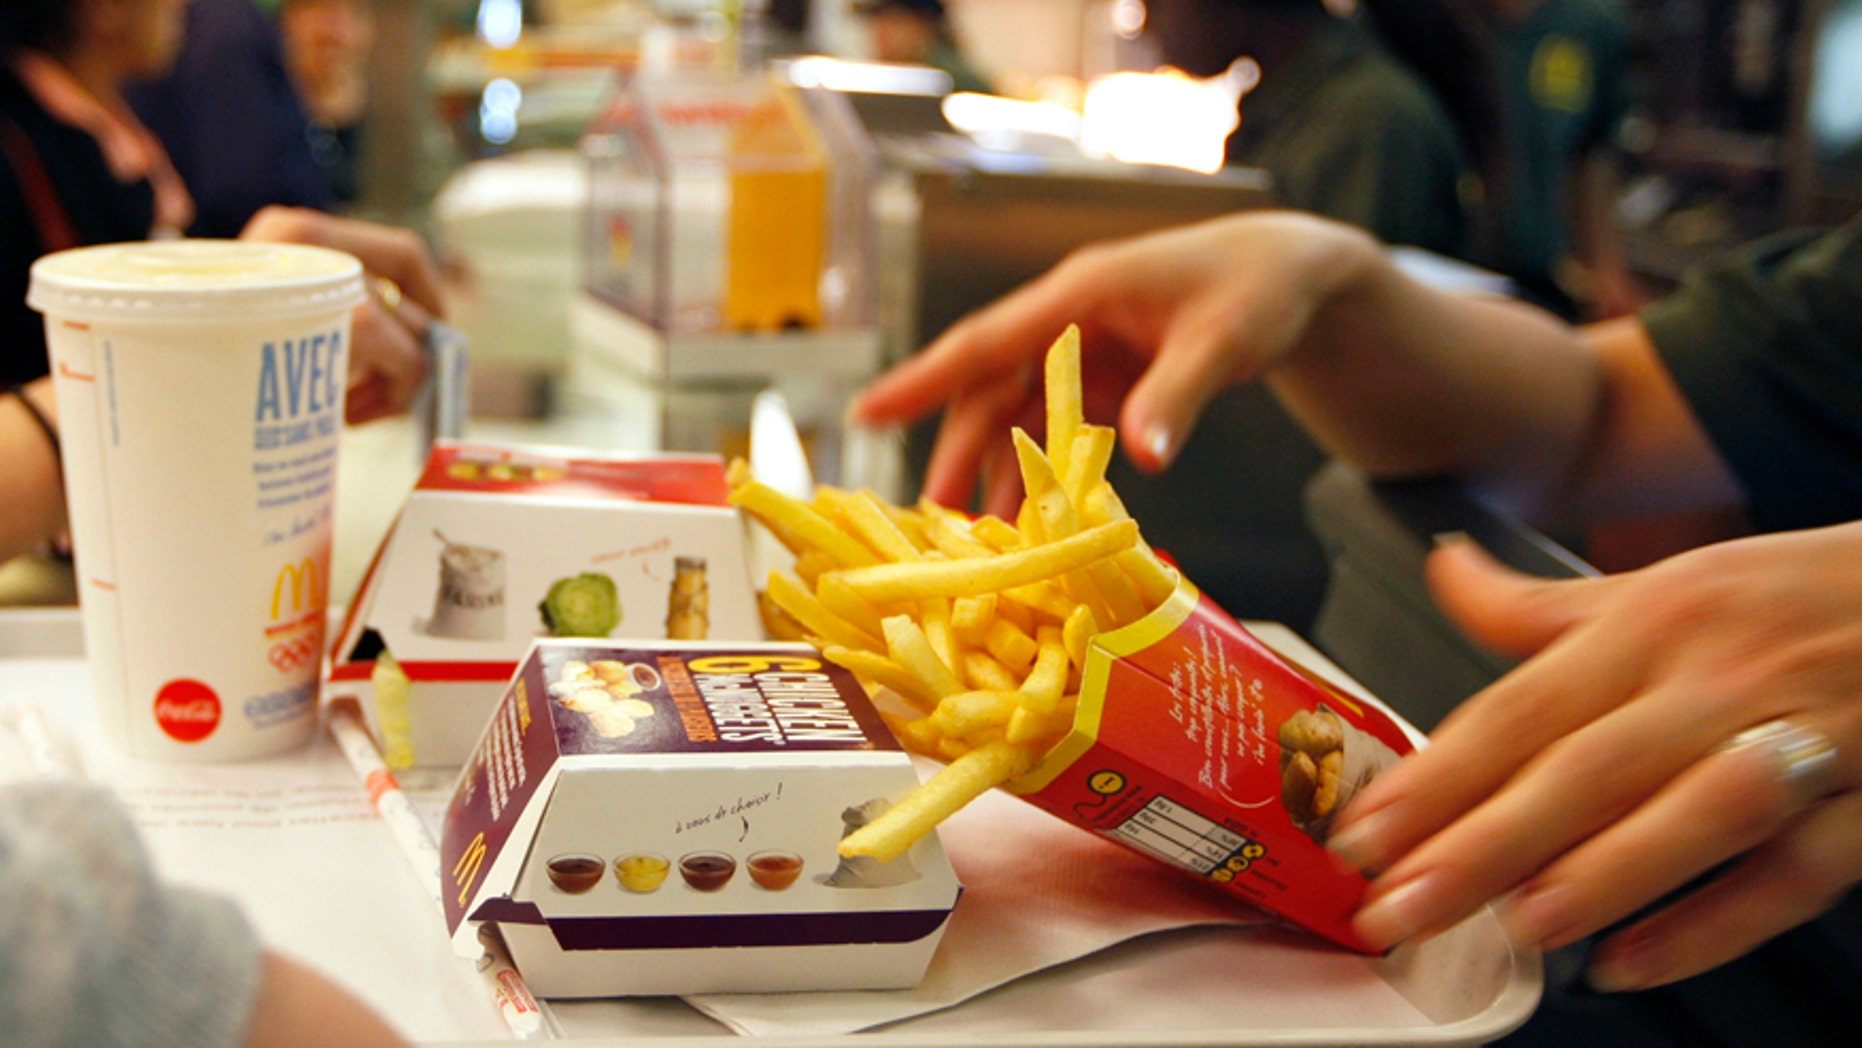 An employee at a McDonald's restaurant serves lunches to customers in Strasbourg, France.